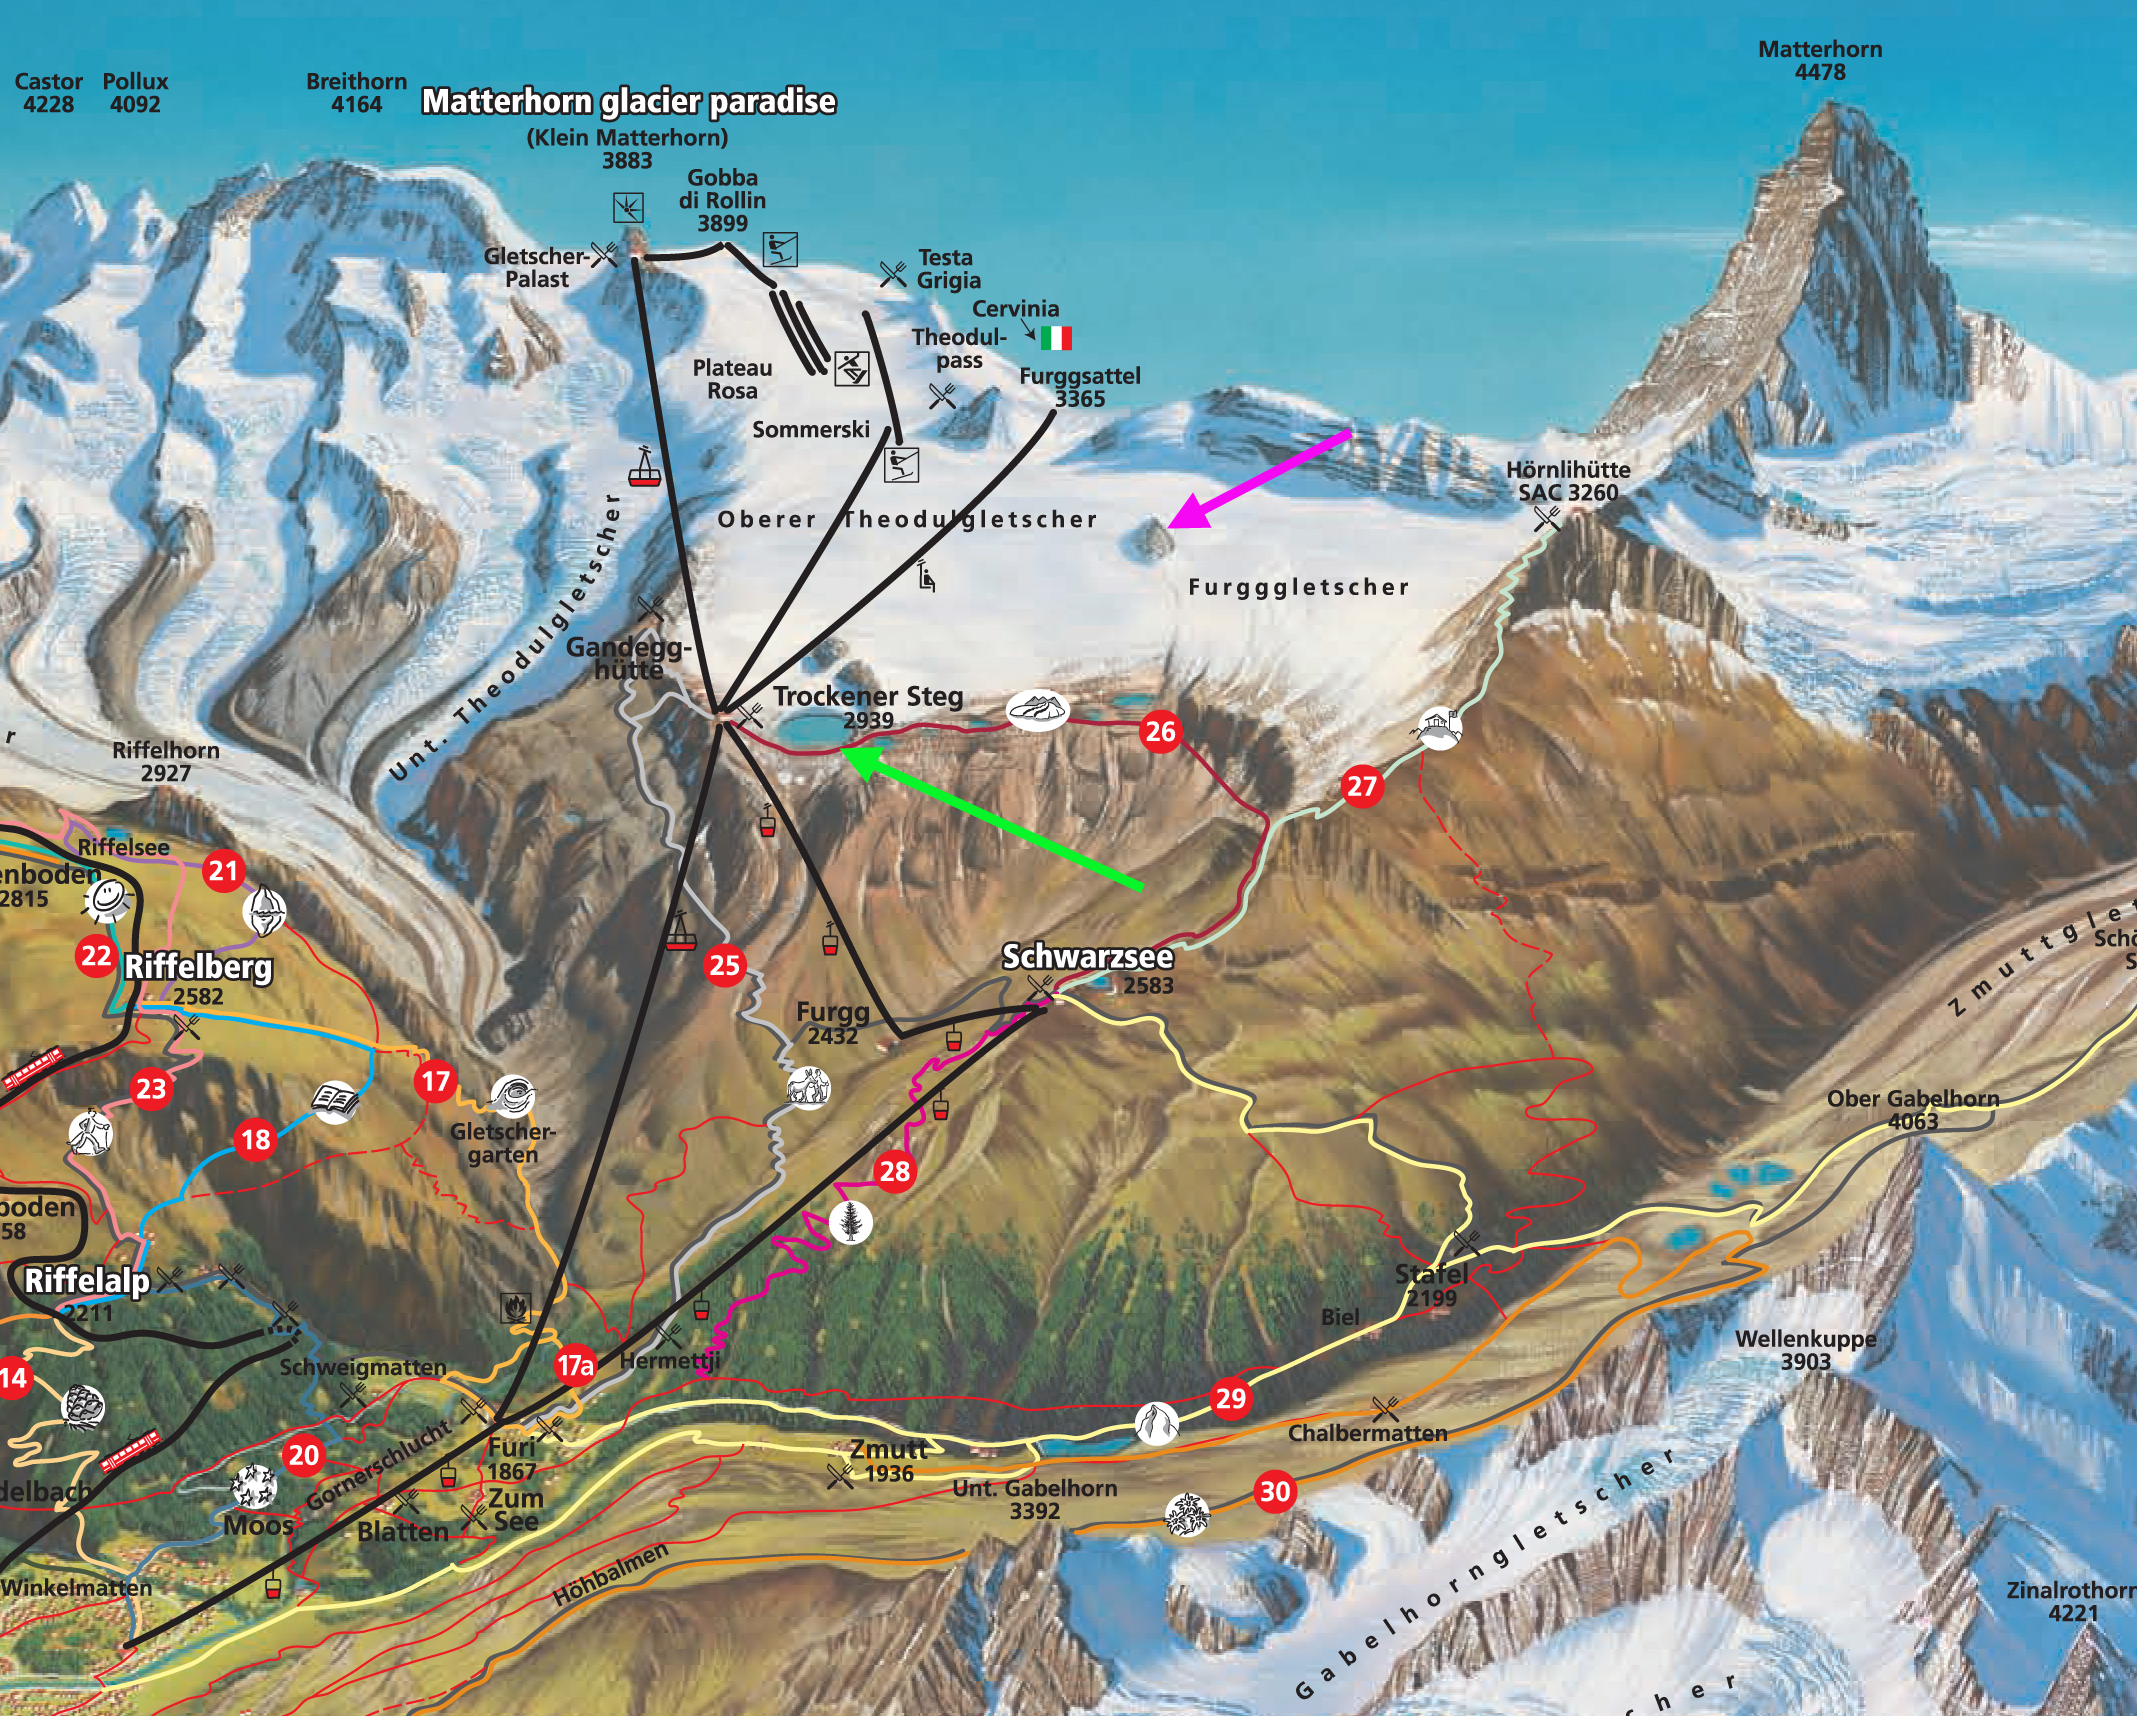 Theodulgletscher Retreat Zermatt Ski area Swizerland From a